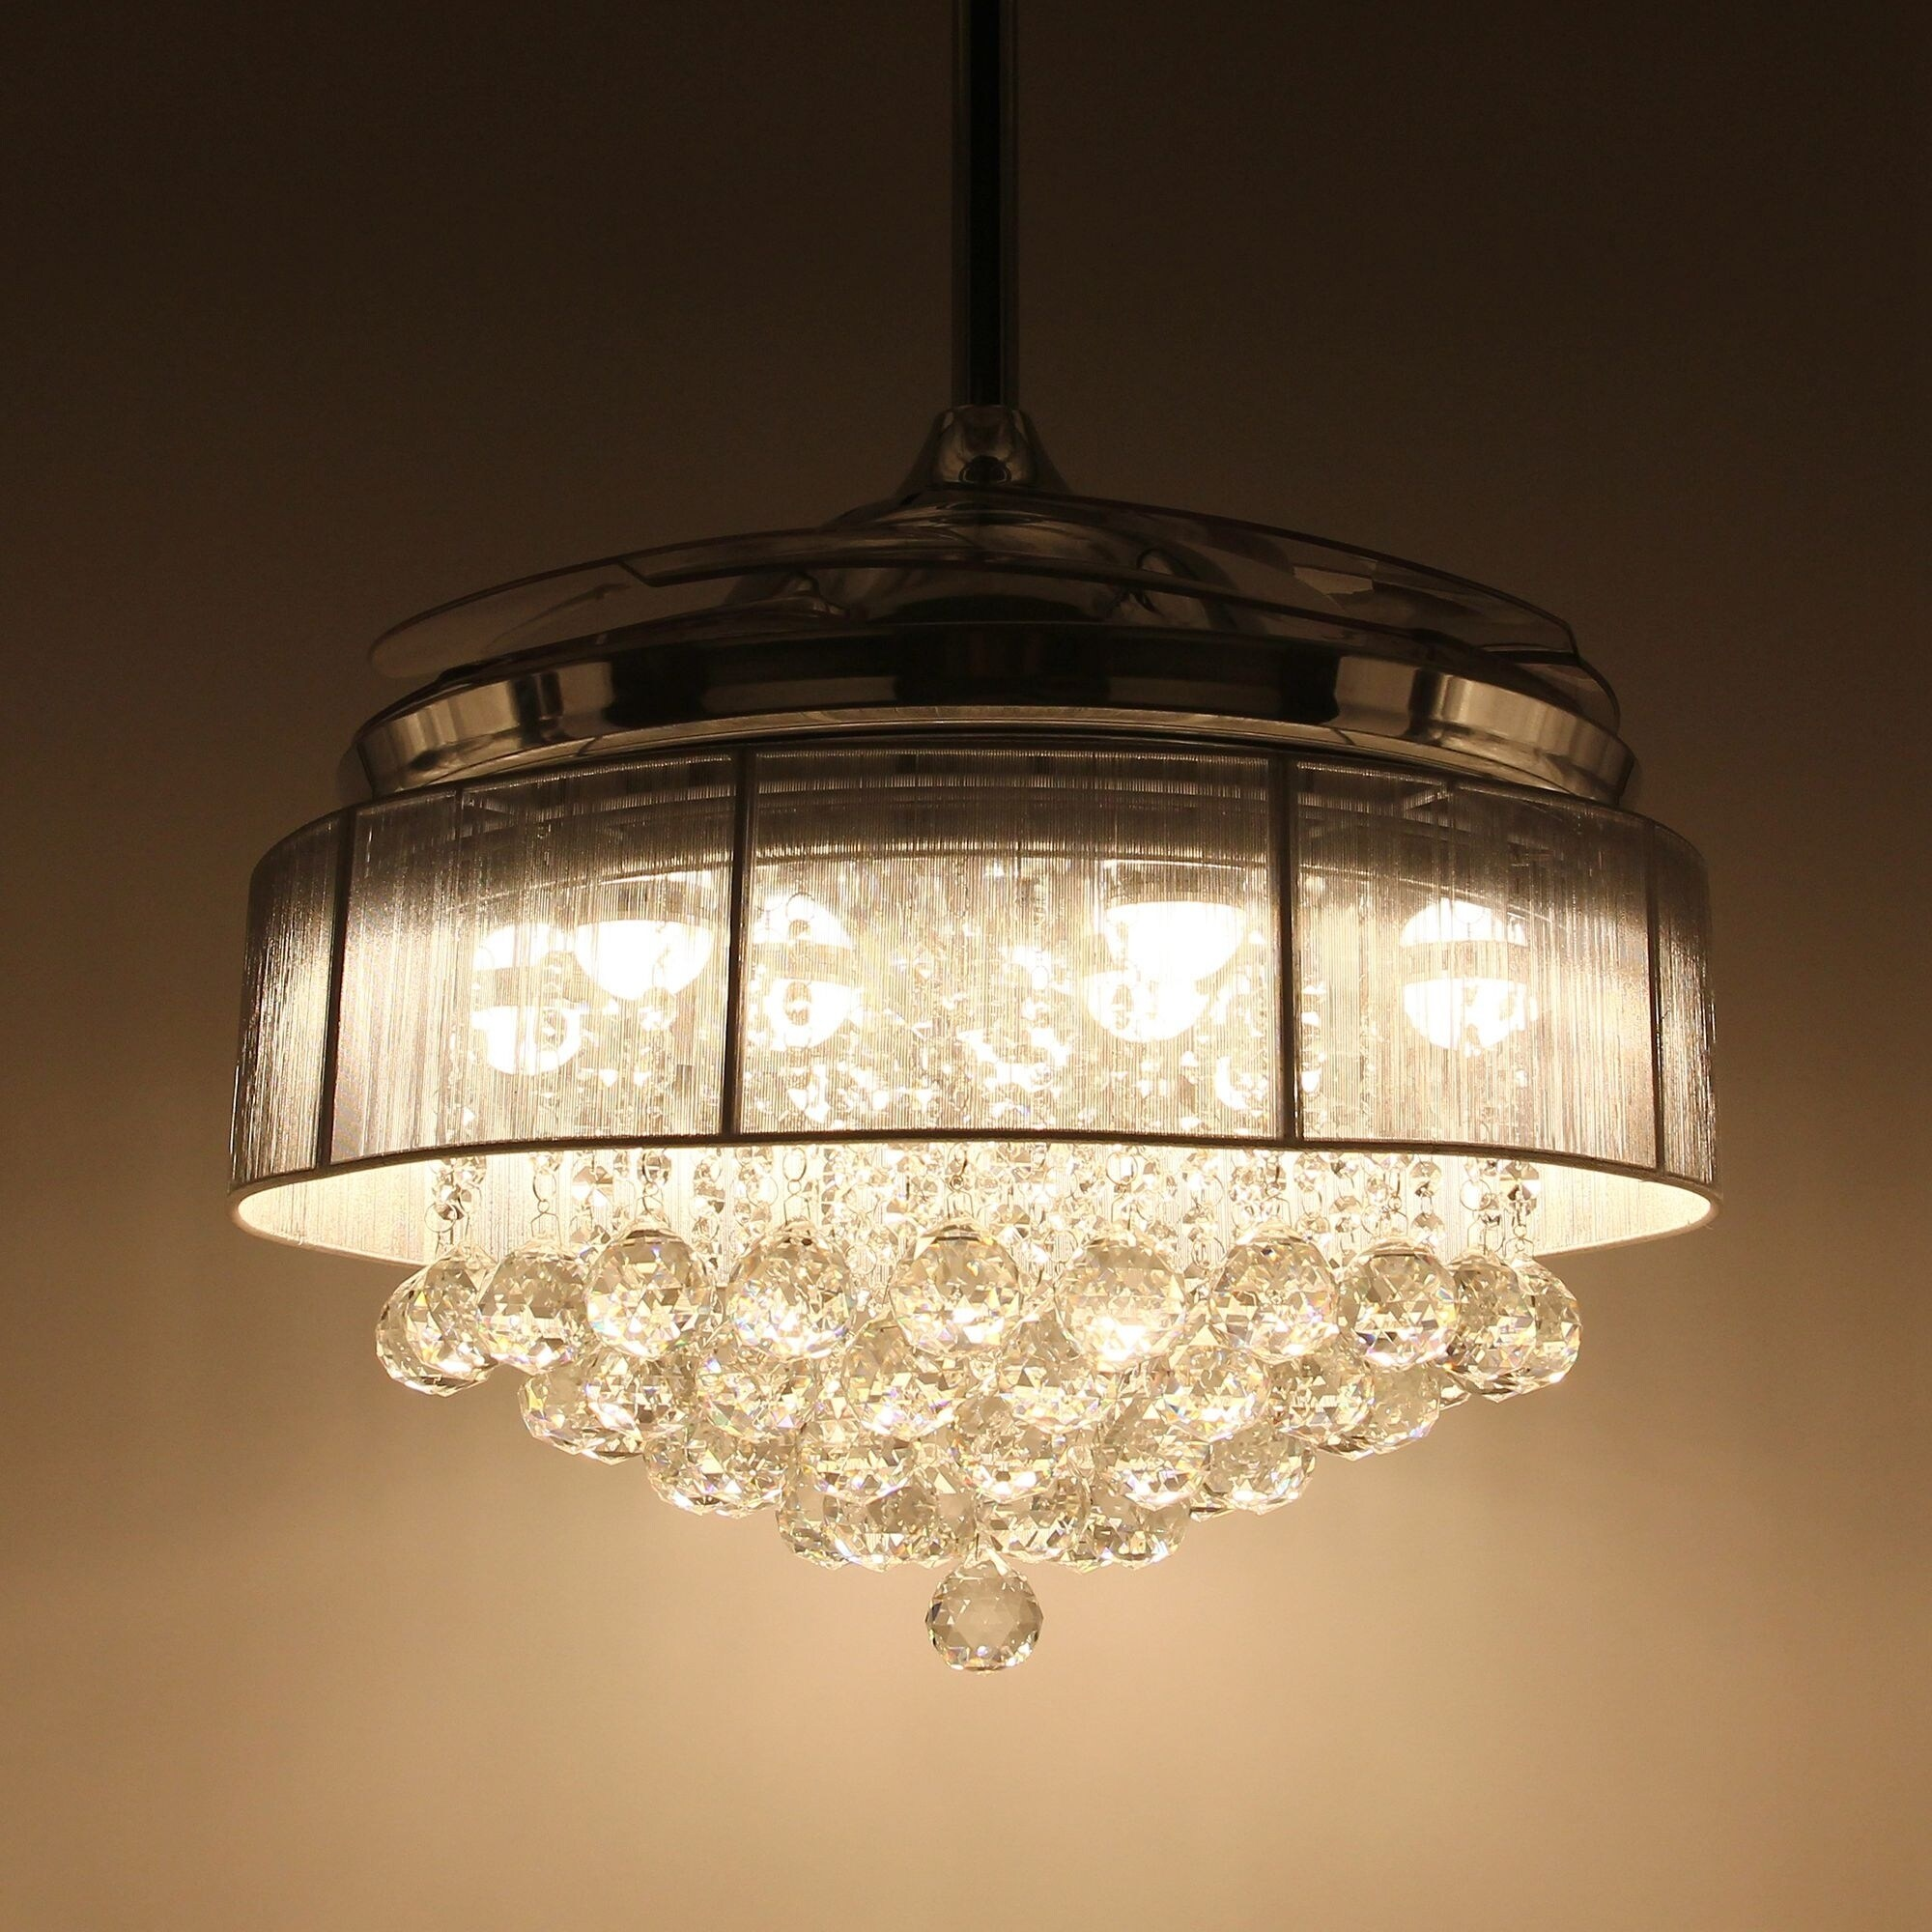 combo lights from lovely with fan full ceiling chandelier is size robinson house of decor john amazing hang free image loading unique